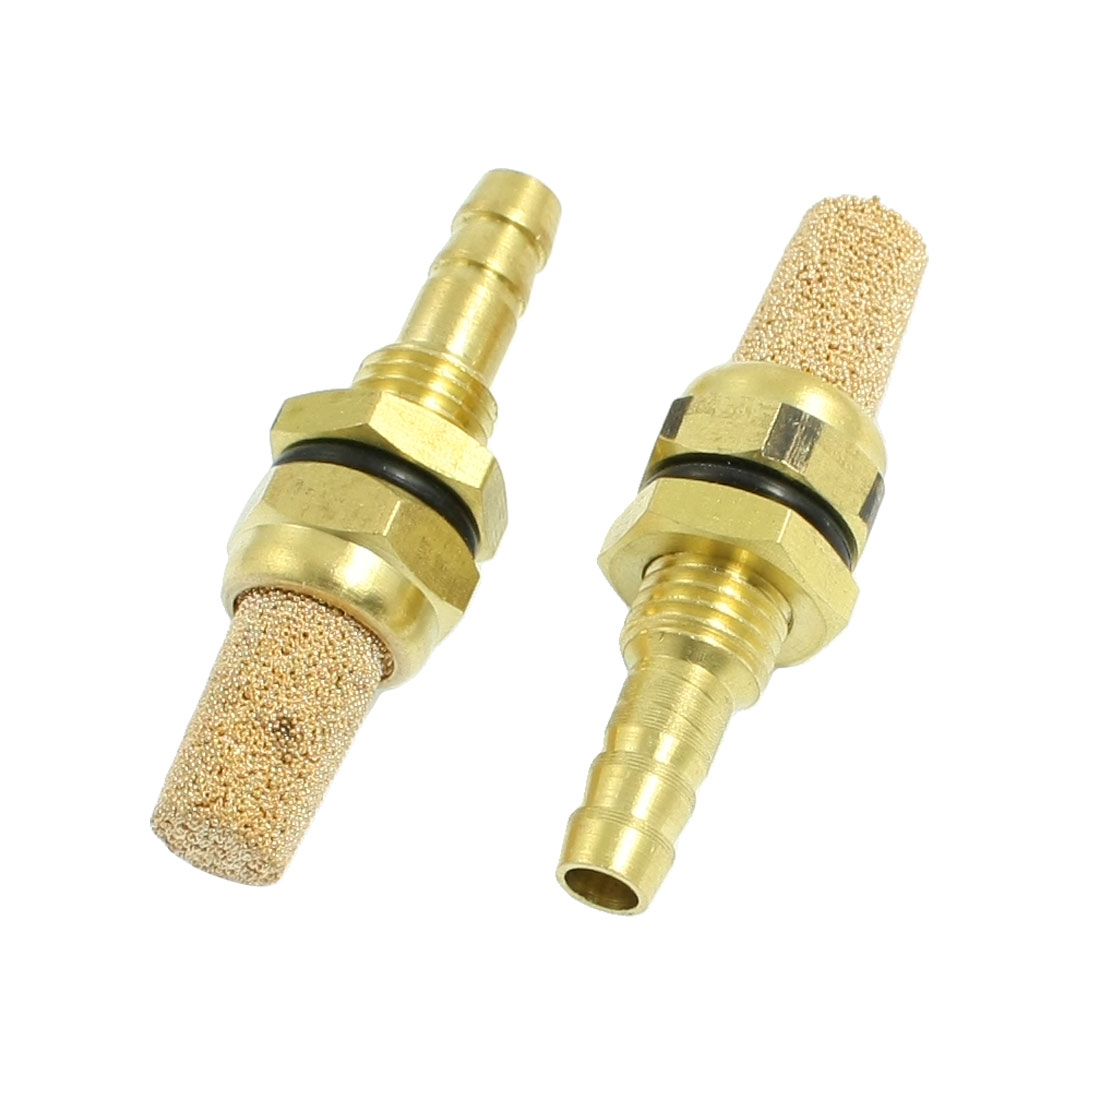 2 Pieces 9.5mm Diameter Screw Thread Muffler Air Bubble Stone for Fish Tank